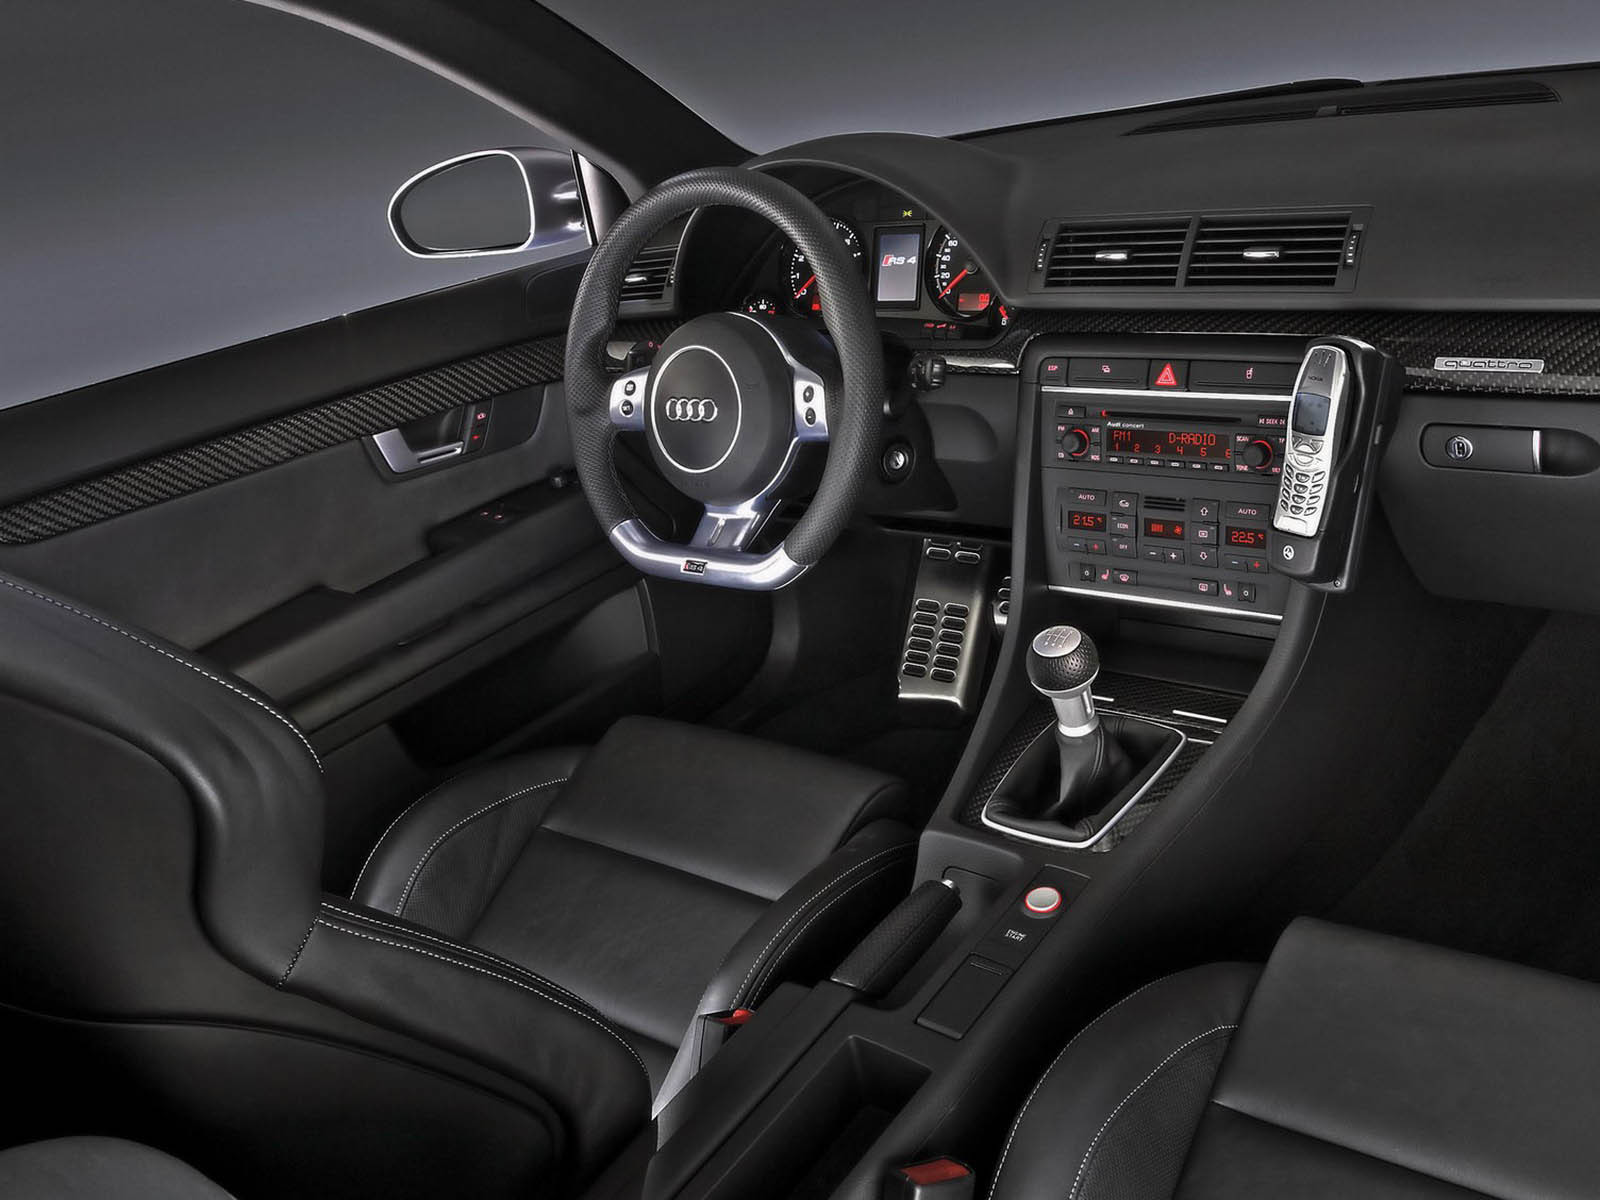 2005 Audi Rs4 Top Speed A4 Radio